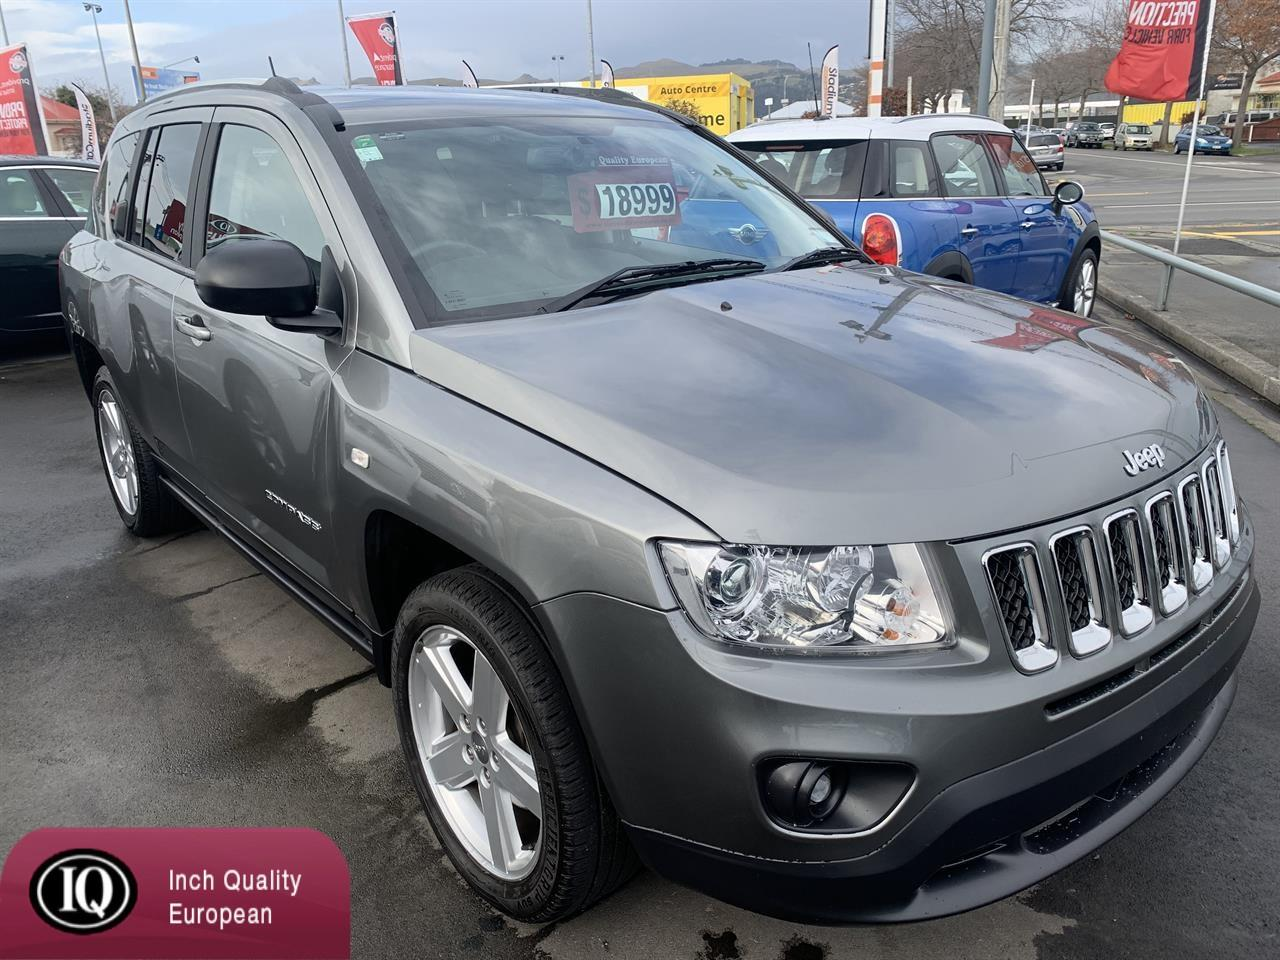 image-0, 2013 Jeep Compass 2.4 NZ NEW 4WD at Christchurch